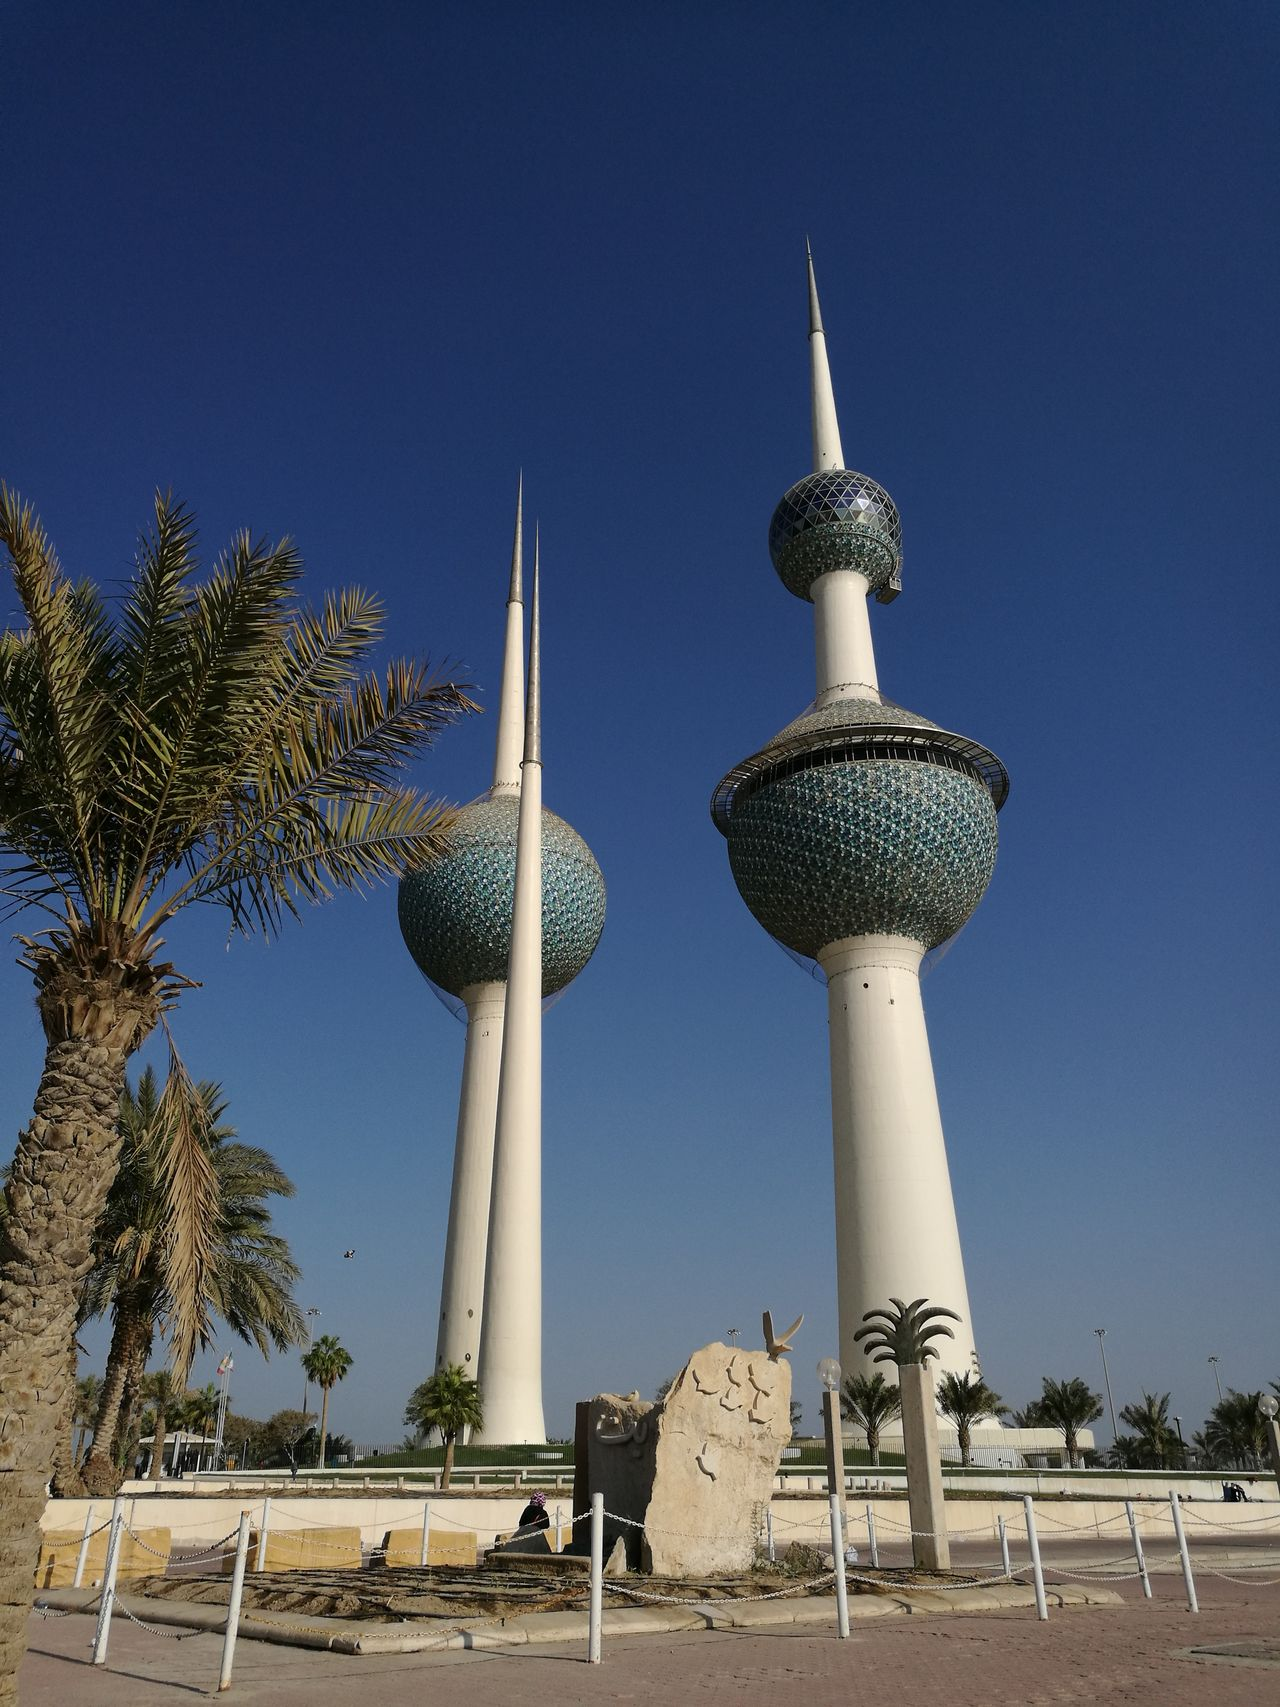 Kuwait Towers No People Travel Destinations Architecture Tourism Clear Sky Landmark Cultures Travel Dome Scenics Cityscape